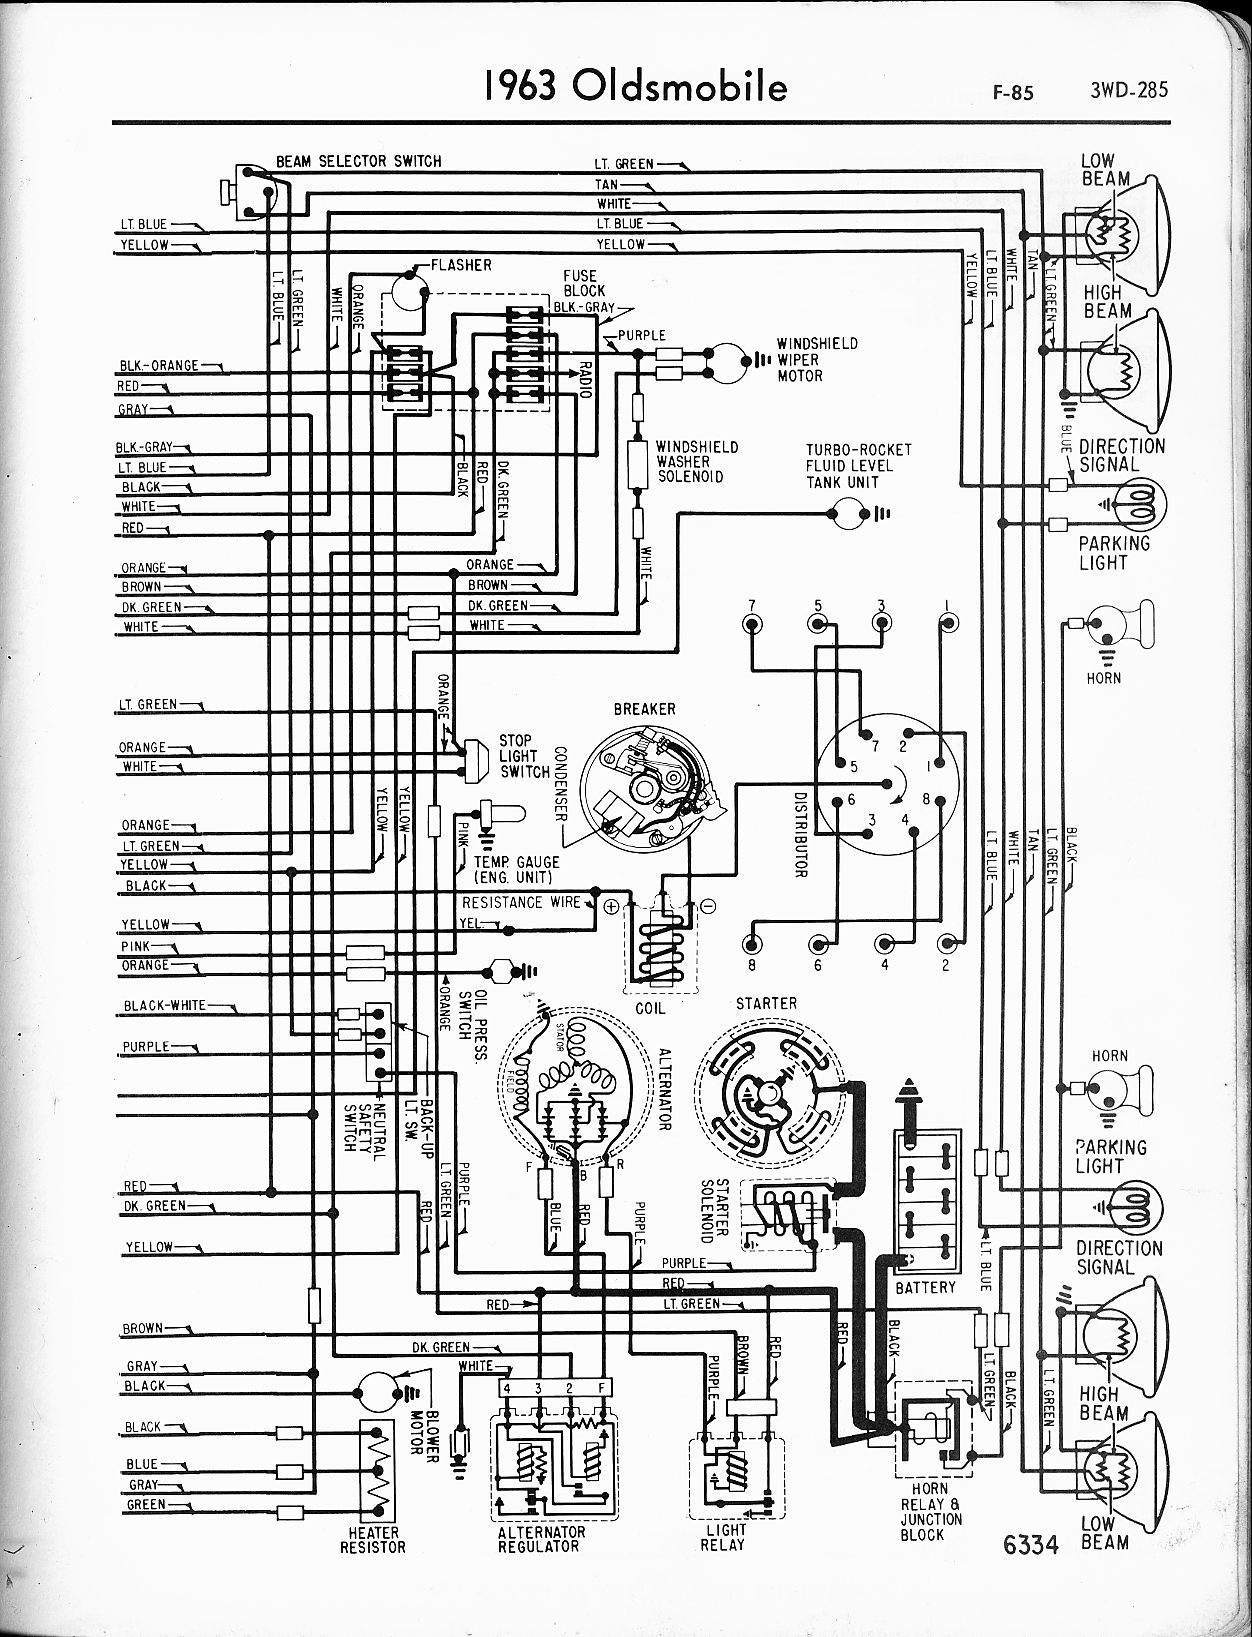 MWire5765 285 charging circuit diagram for the 1955 oldsmobile all models simple